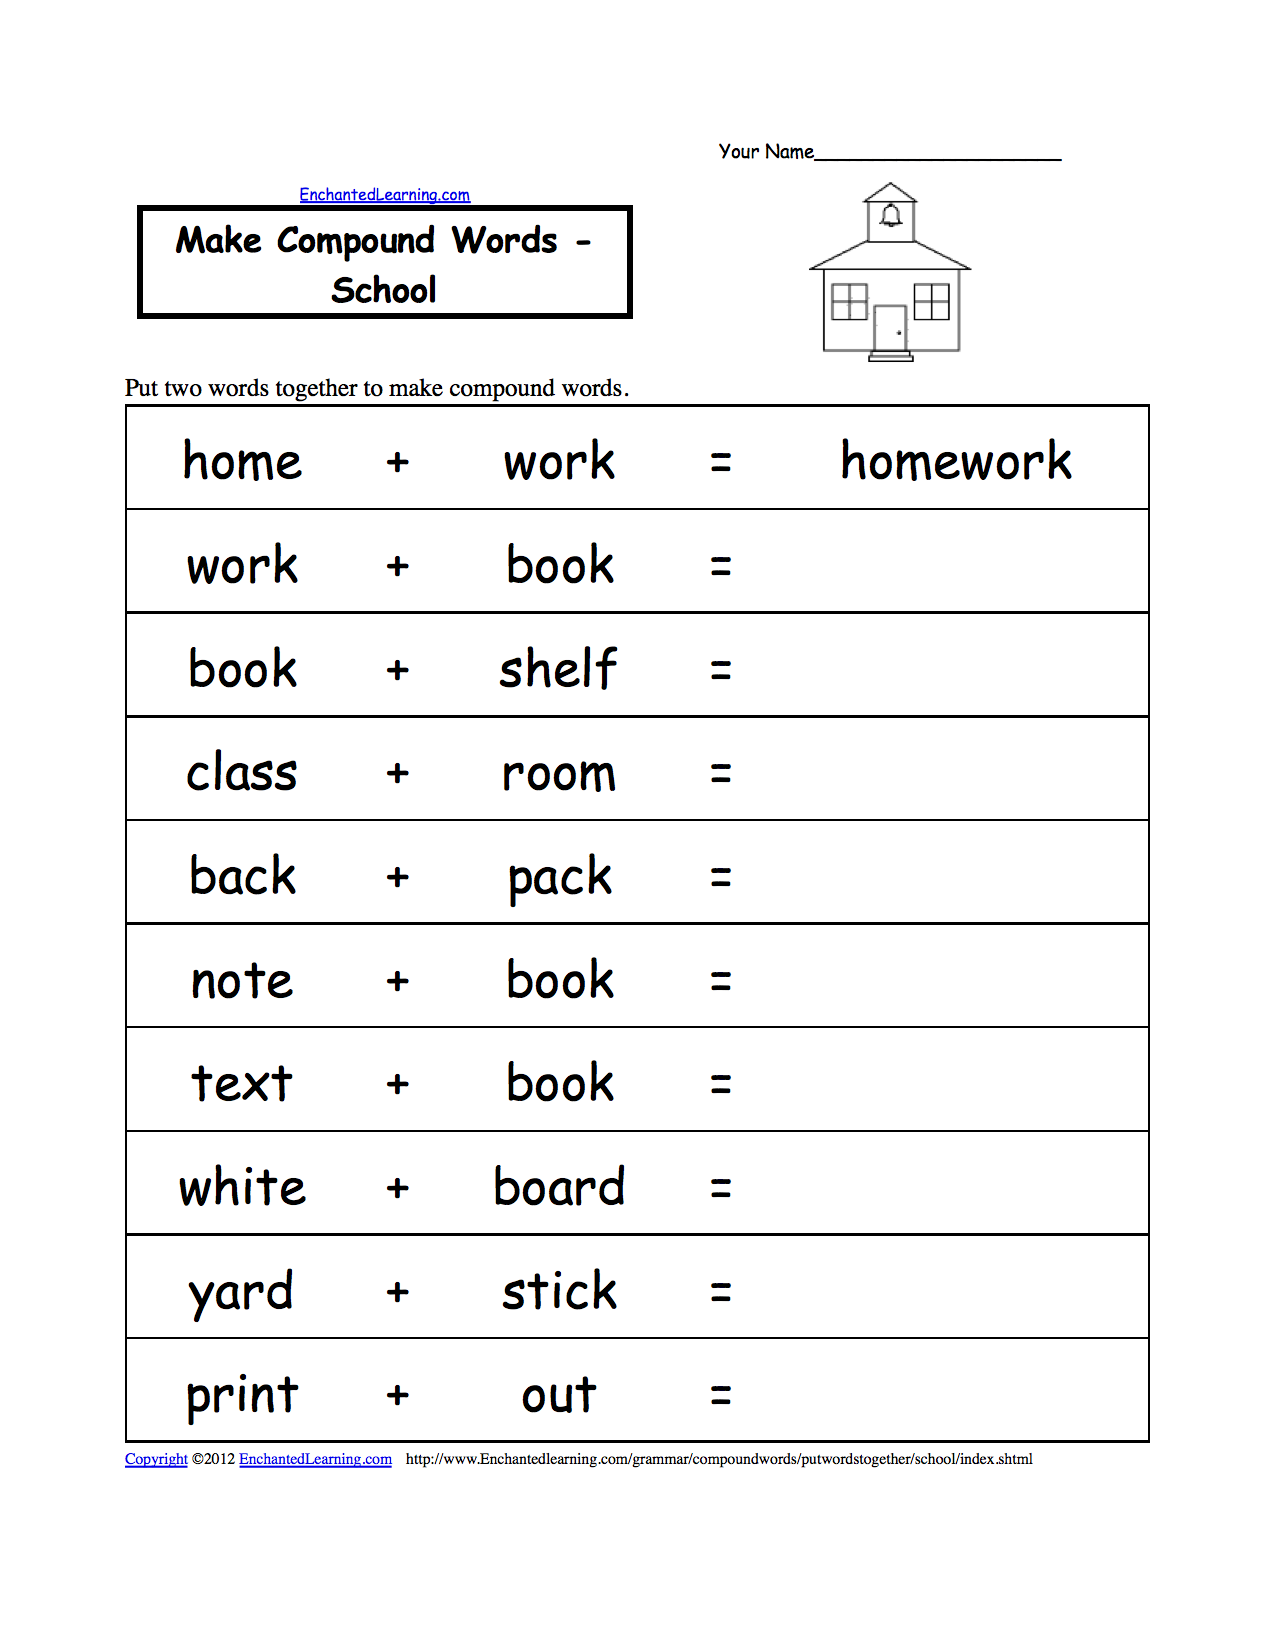 Make Compound Words - School, A Printable Worksheet ...